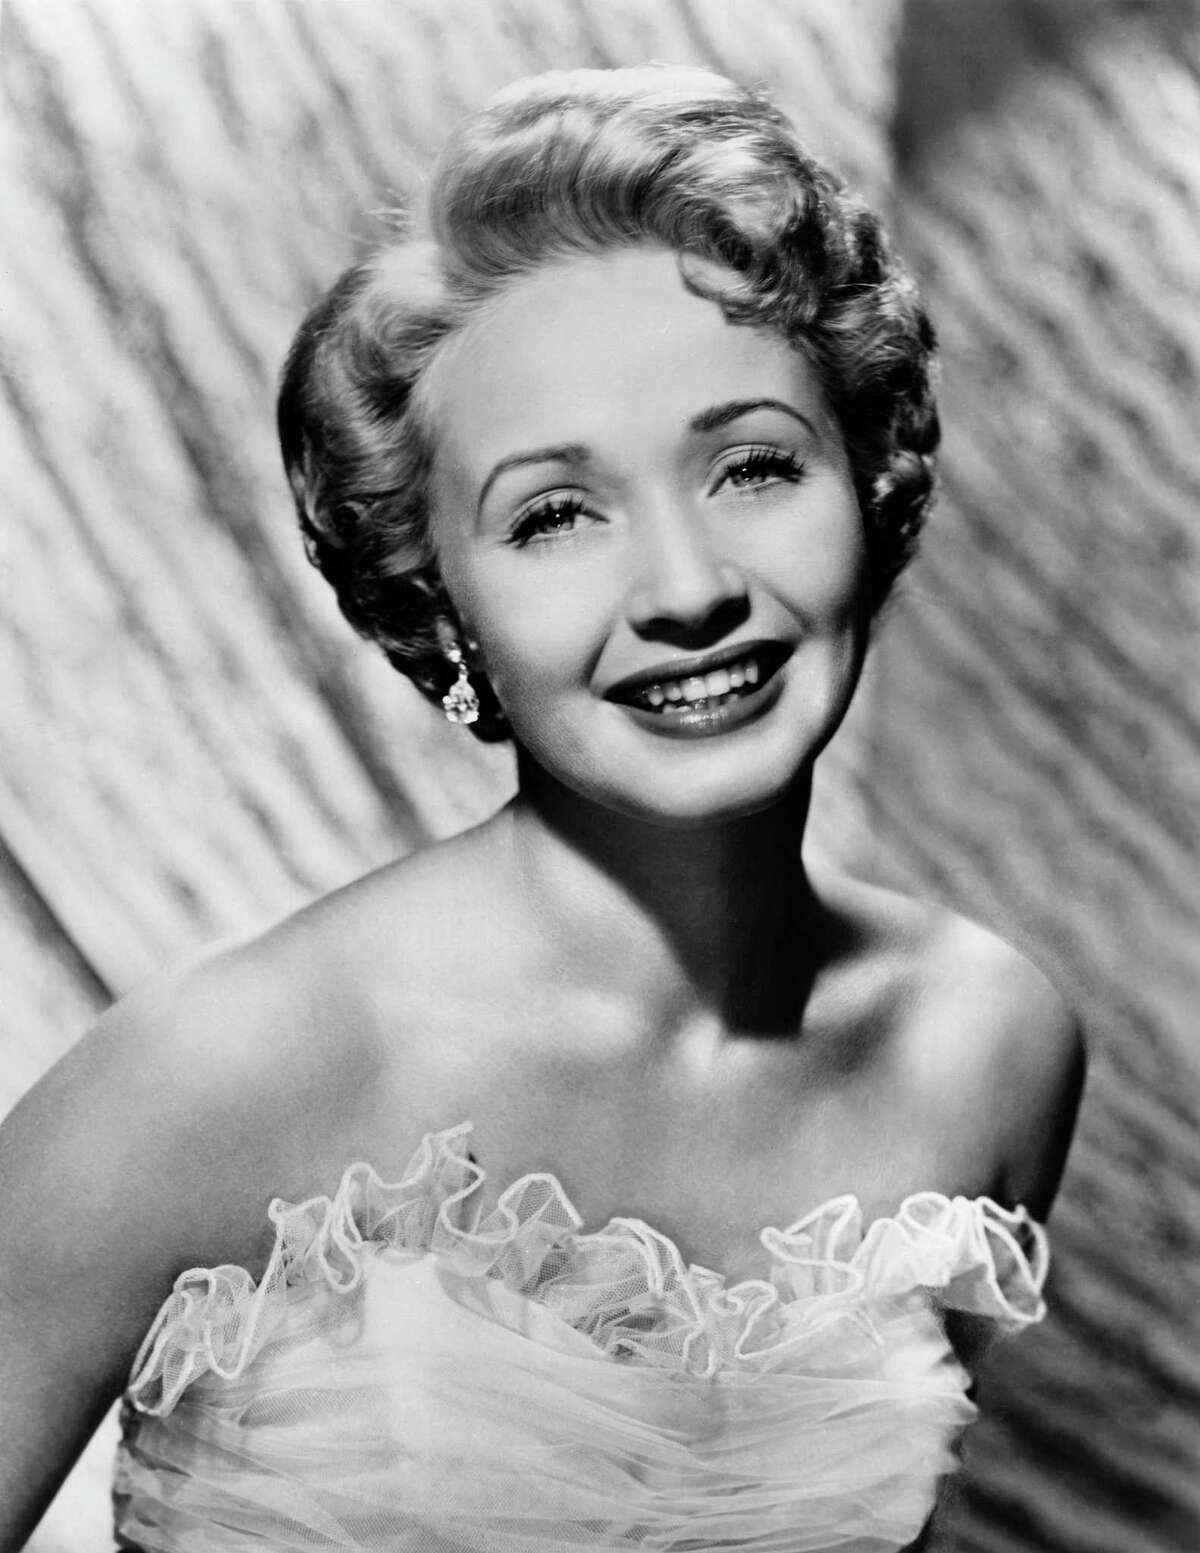 Actress Jane Powell, who lives in Wilton, made her film debut in 1944. In her early days at MGM, she attended school on the studio lot with other young actors, including Debbie Reynolds and Elizabeth Taylor.